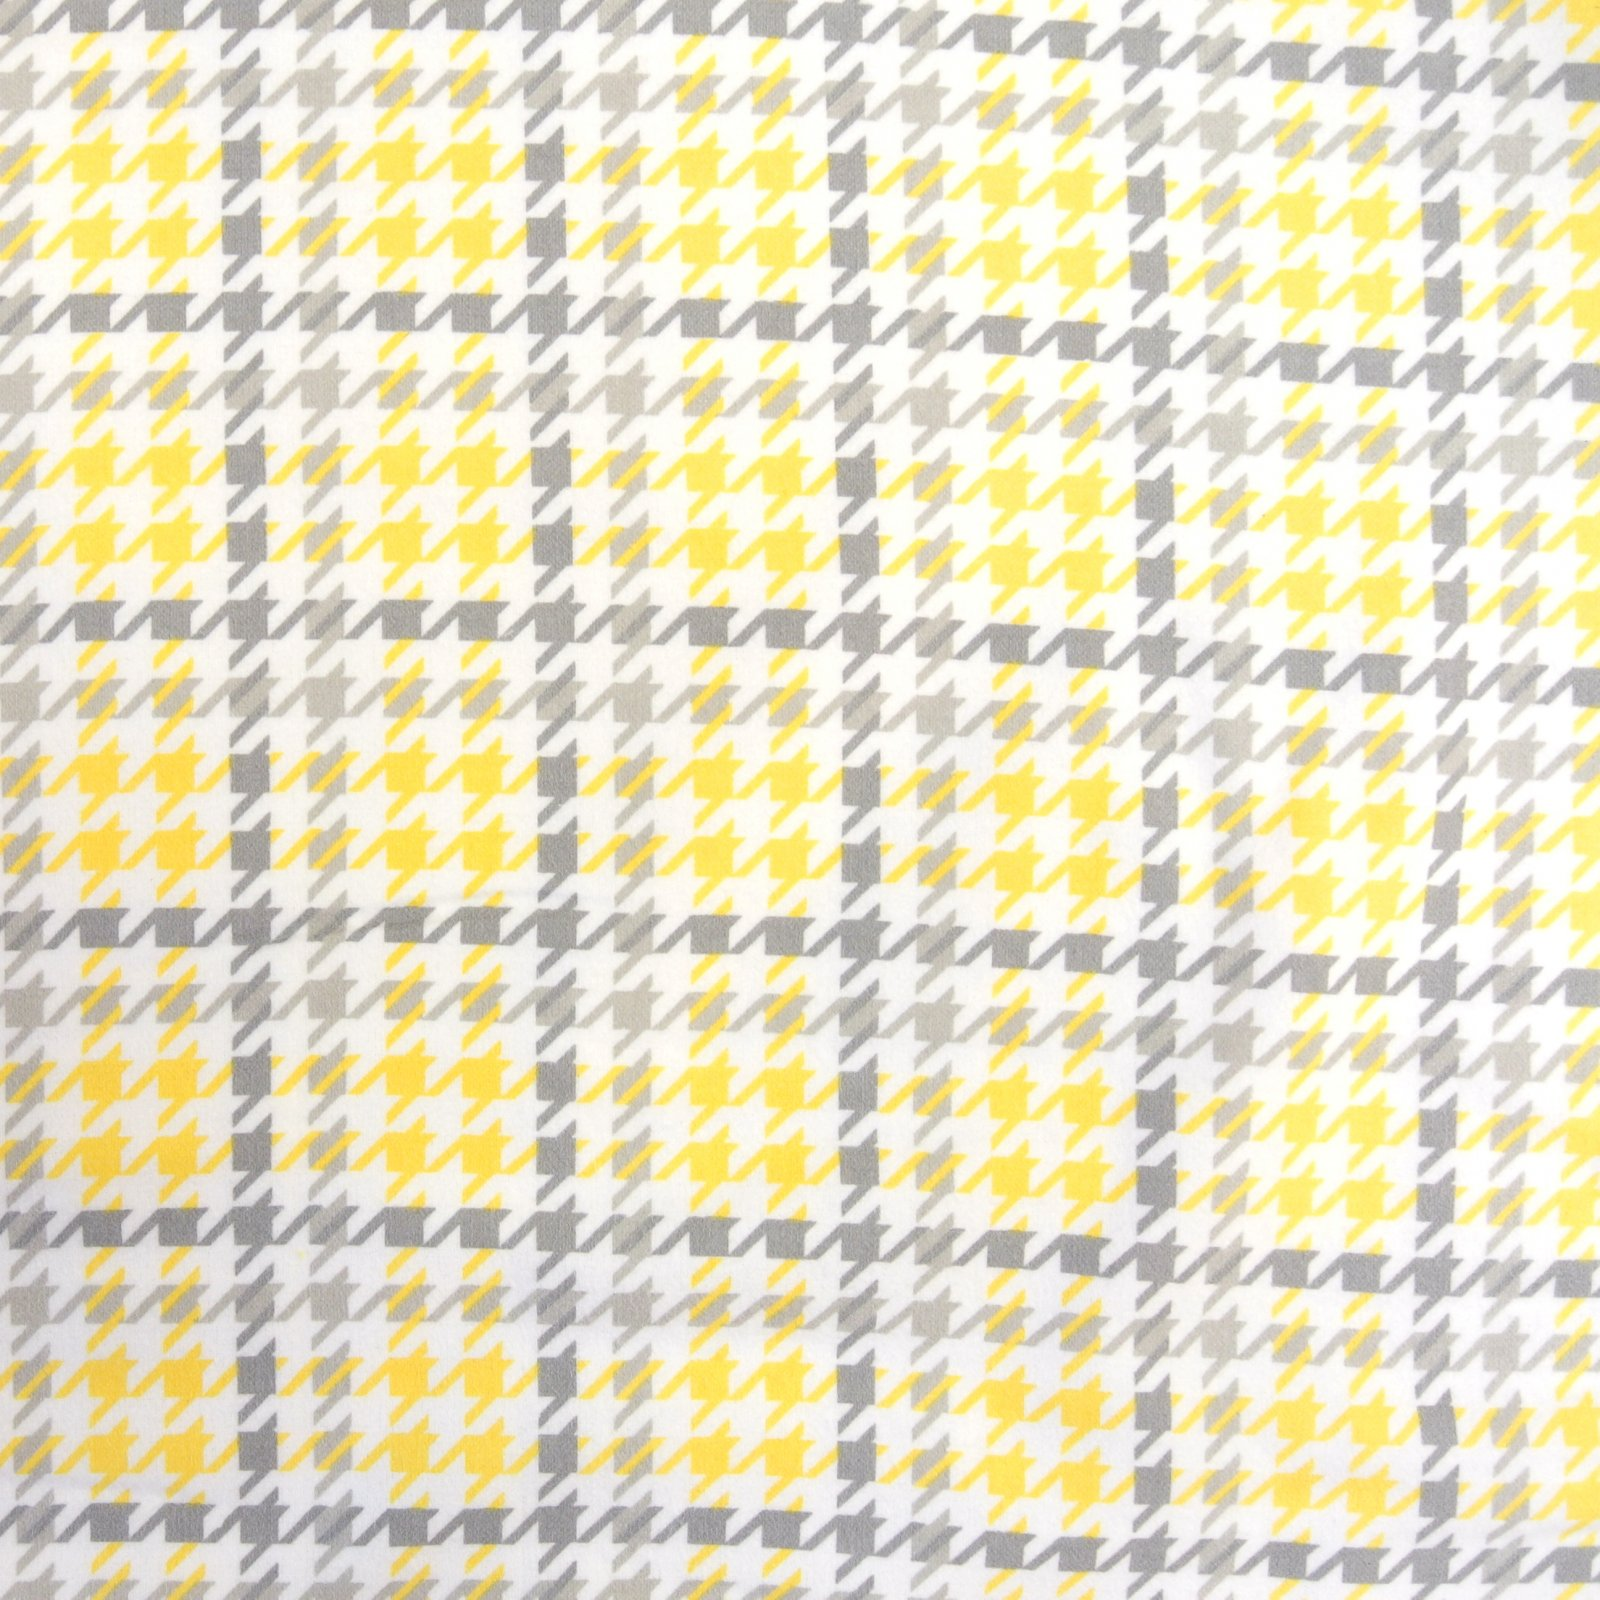 Cozy Cotton Houndstooth Flannel yellow